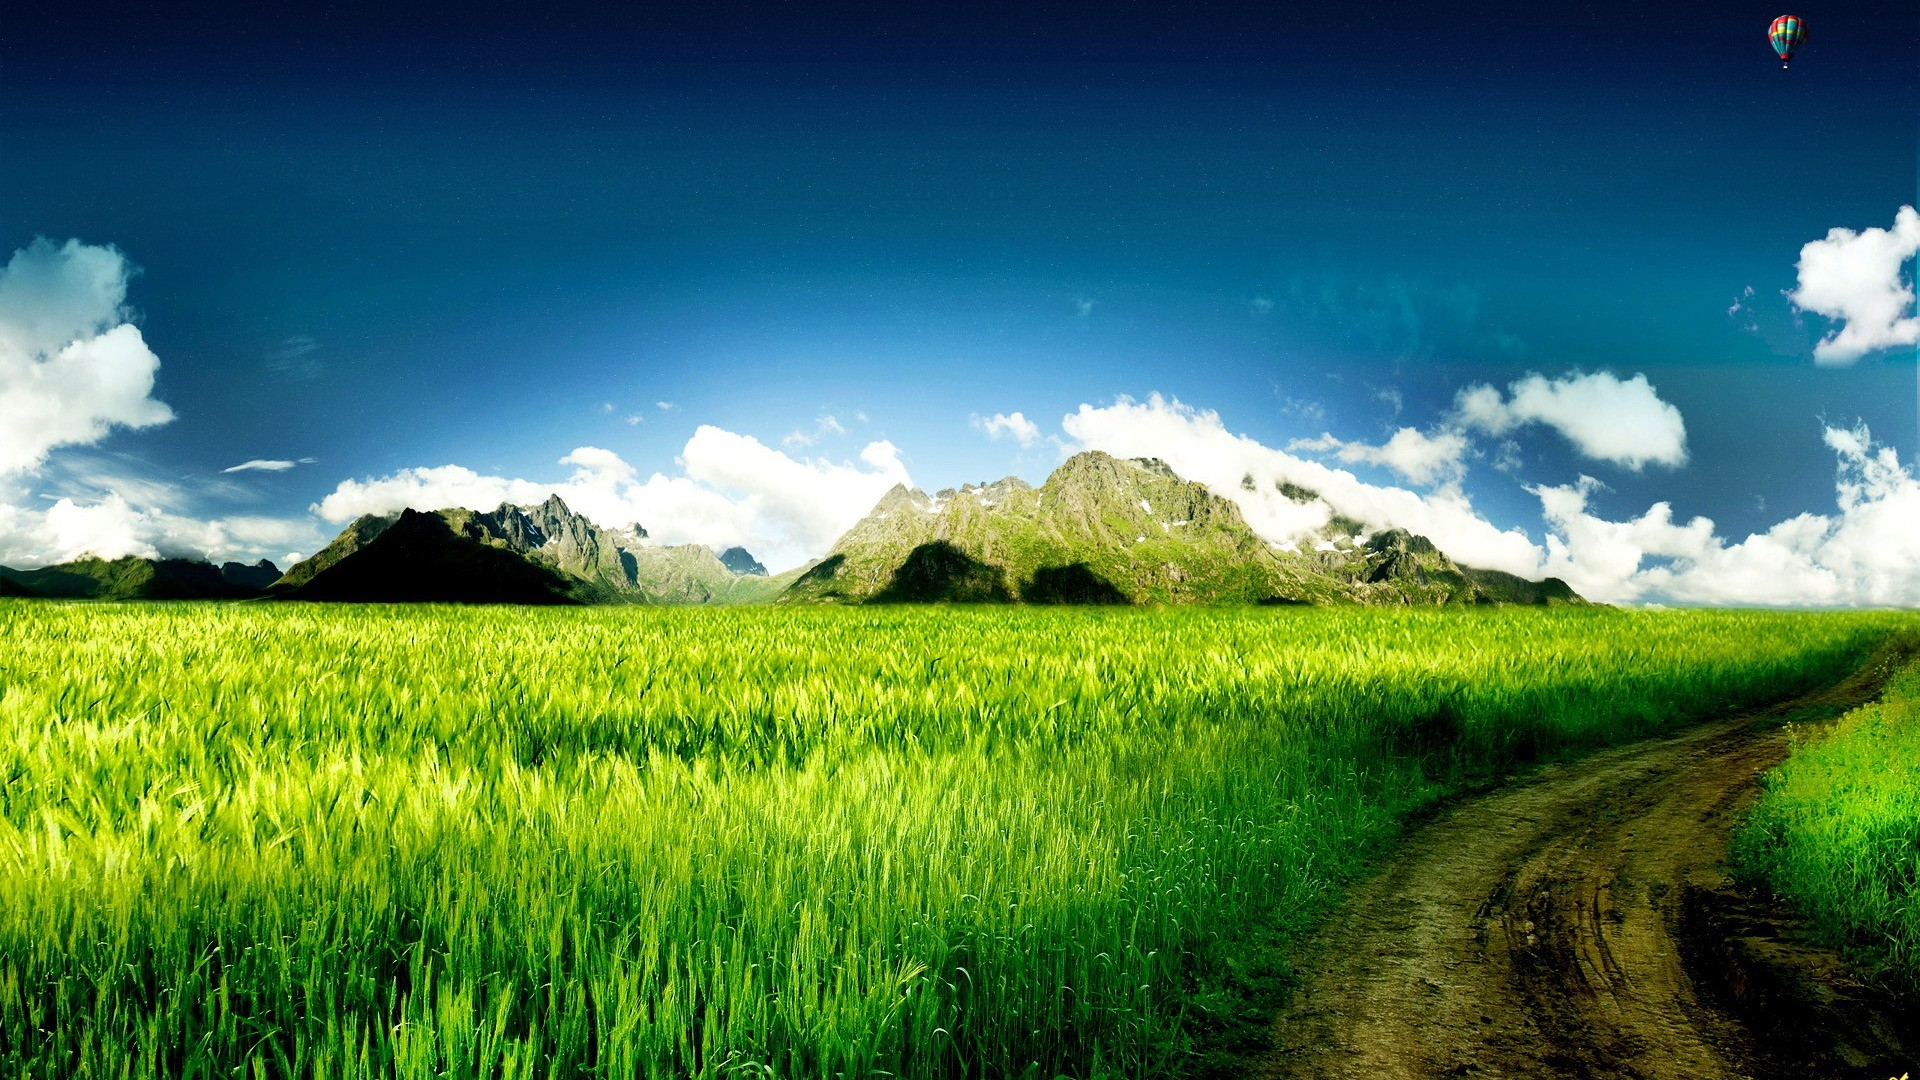 1920x1080 HD Widescreen Wallpapers Landscape #17 - .